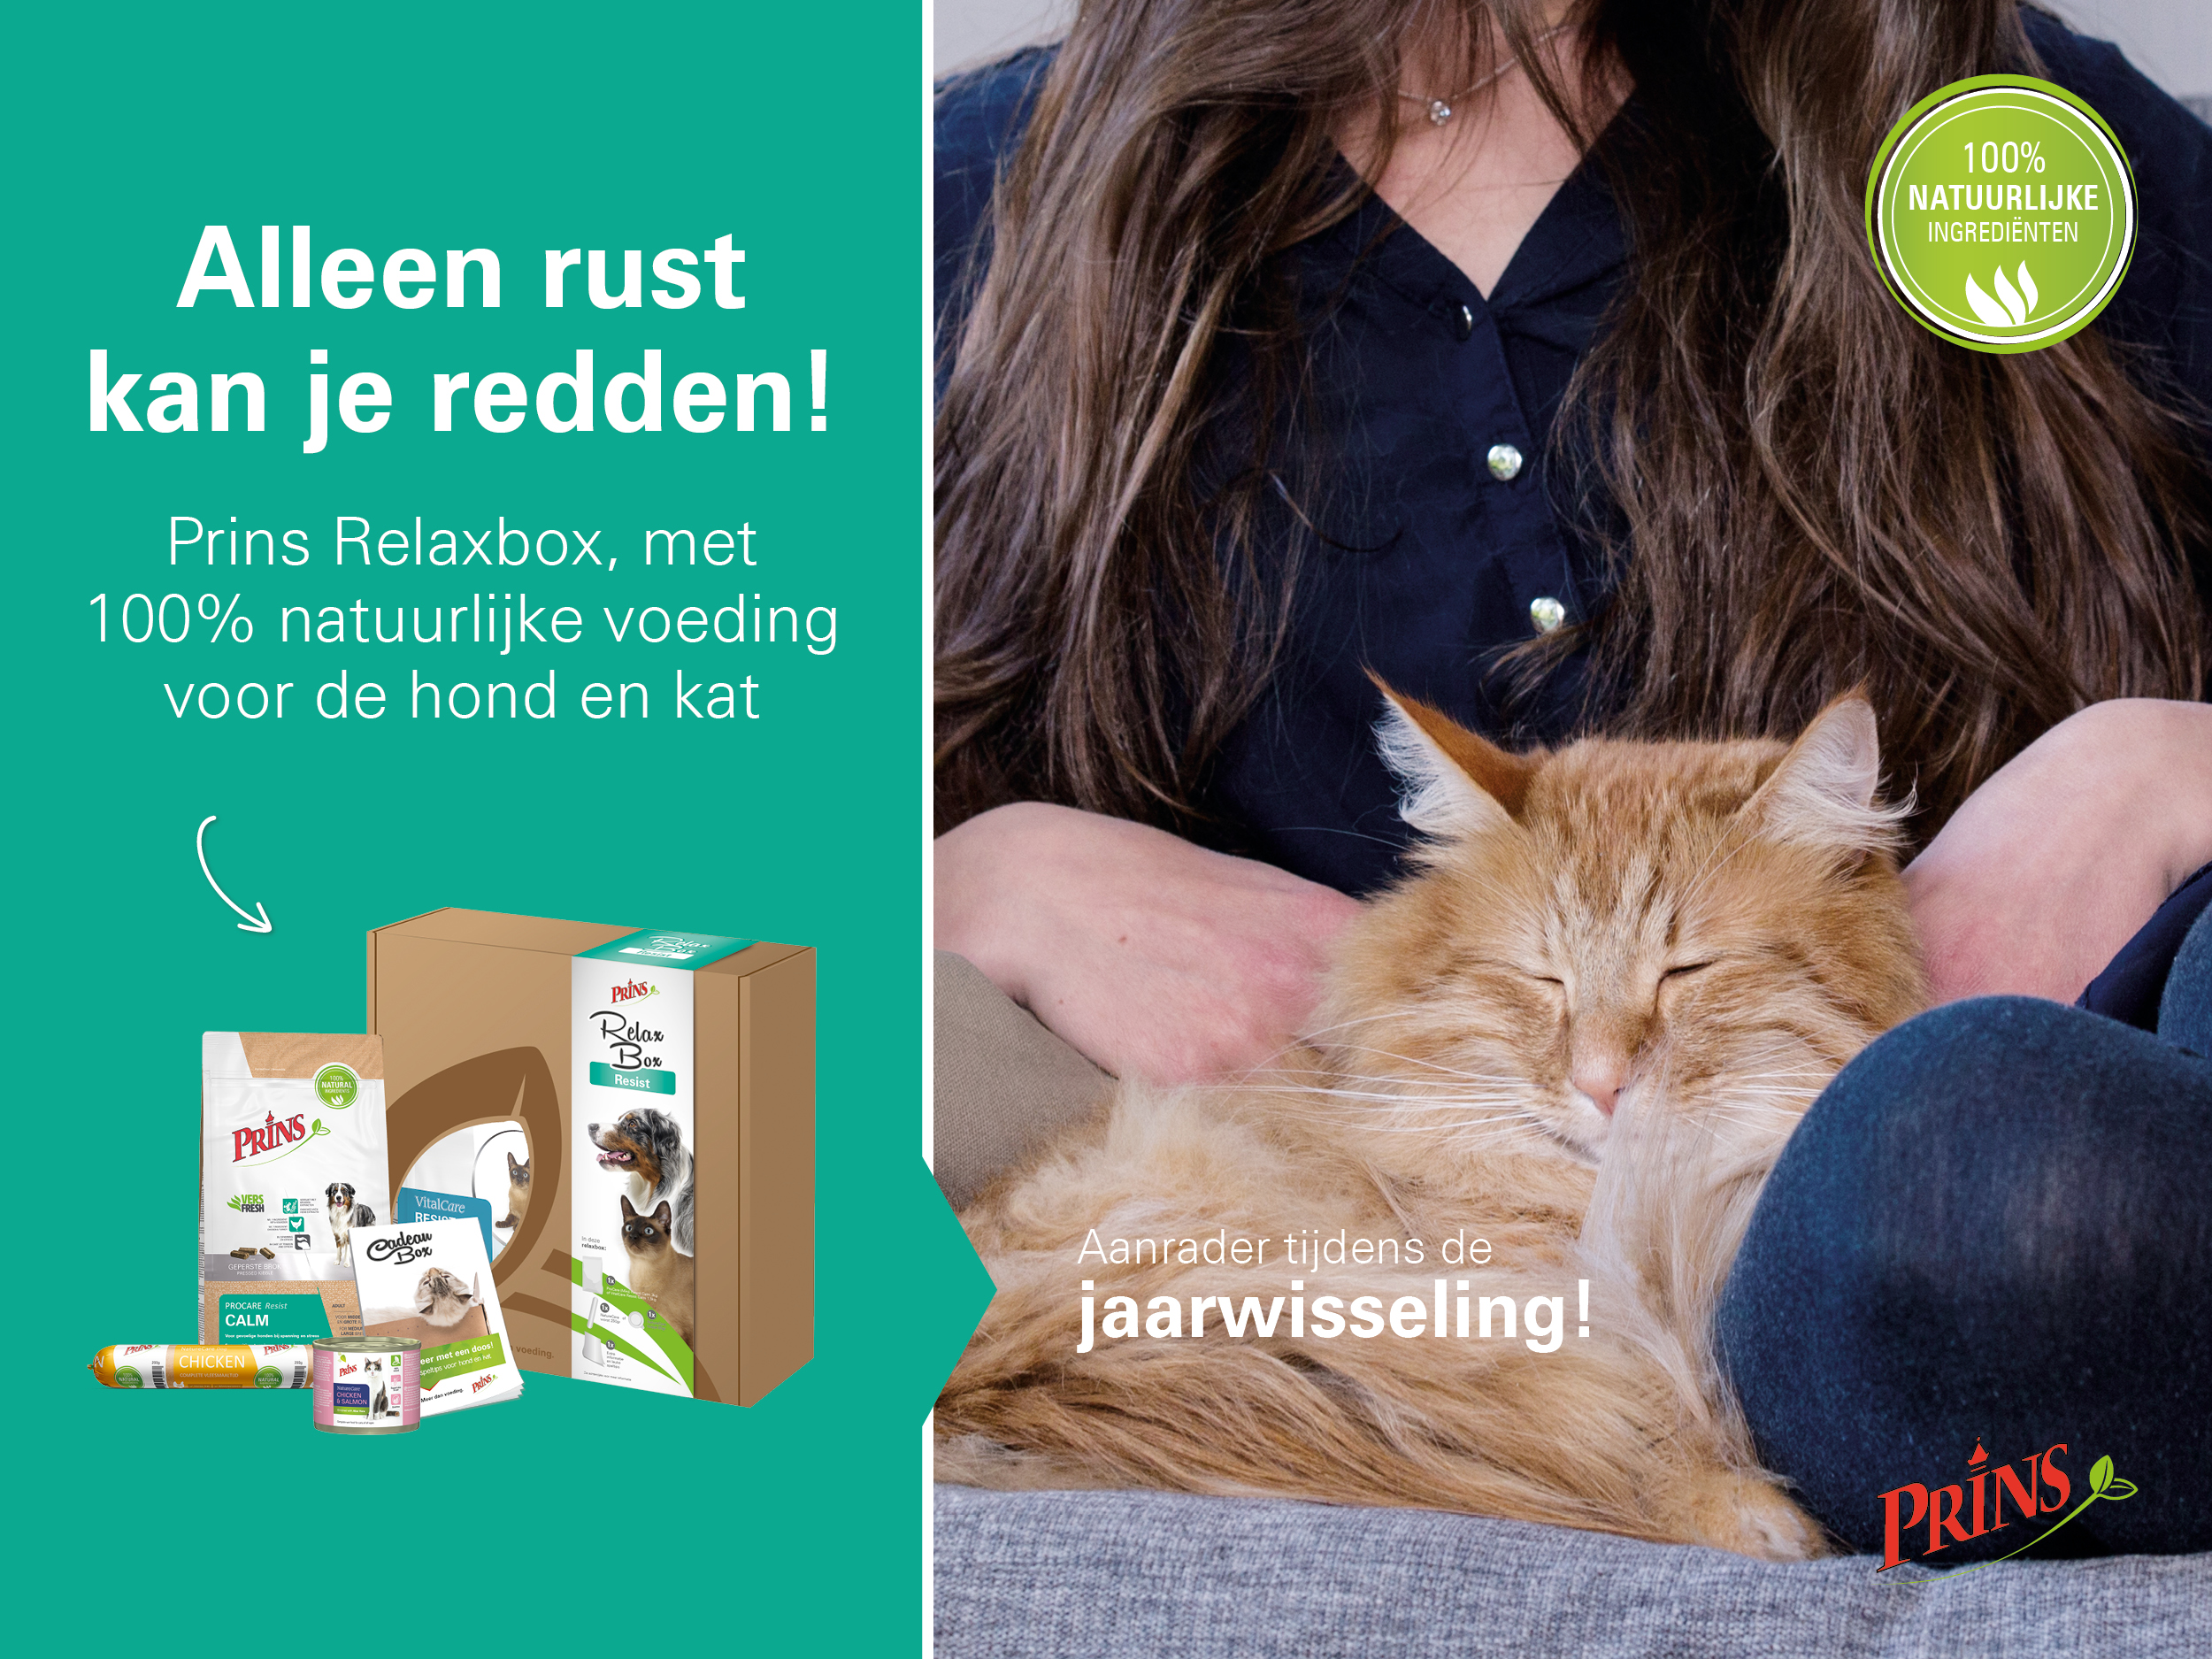 Prins Relaxbox